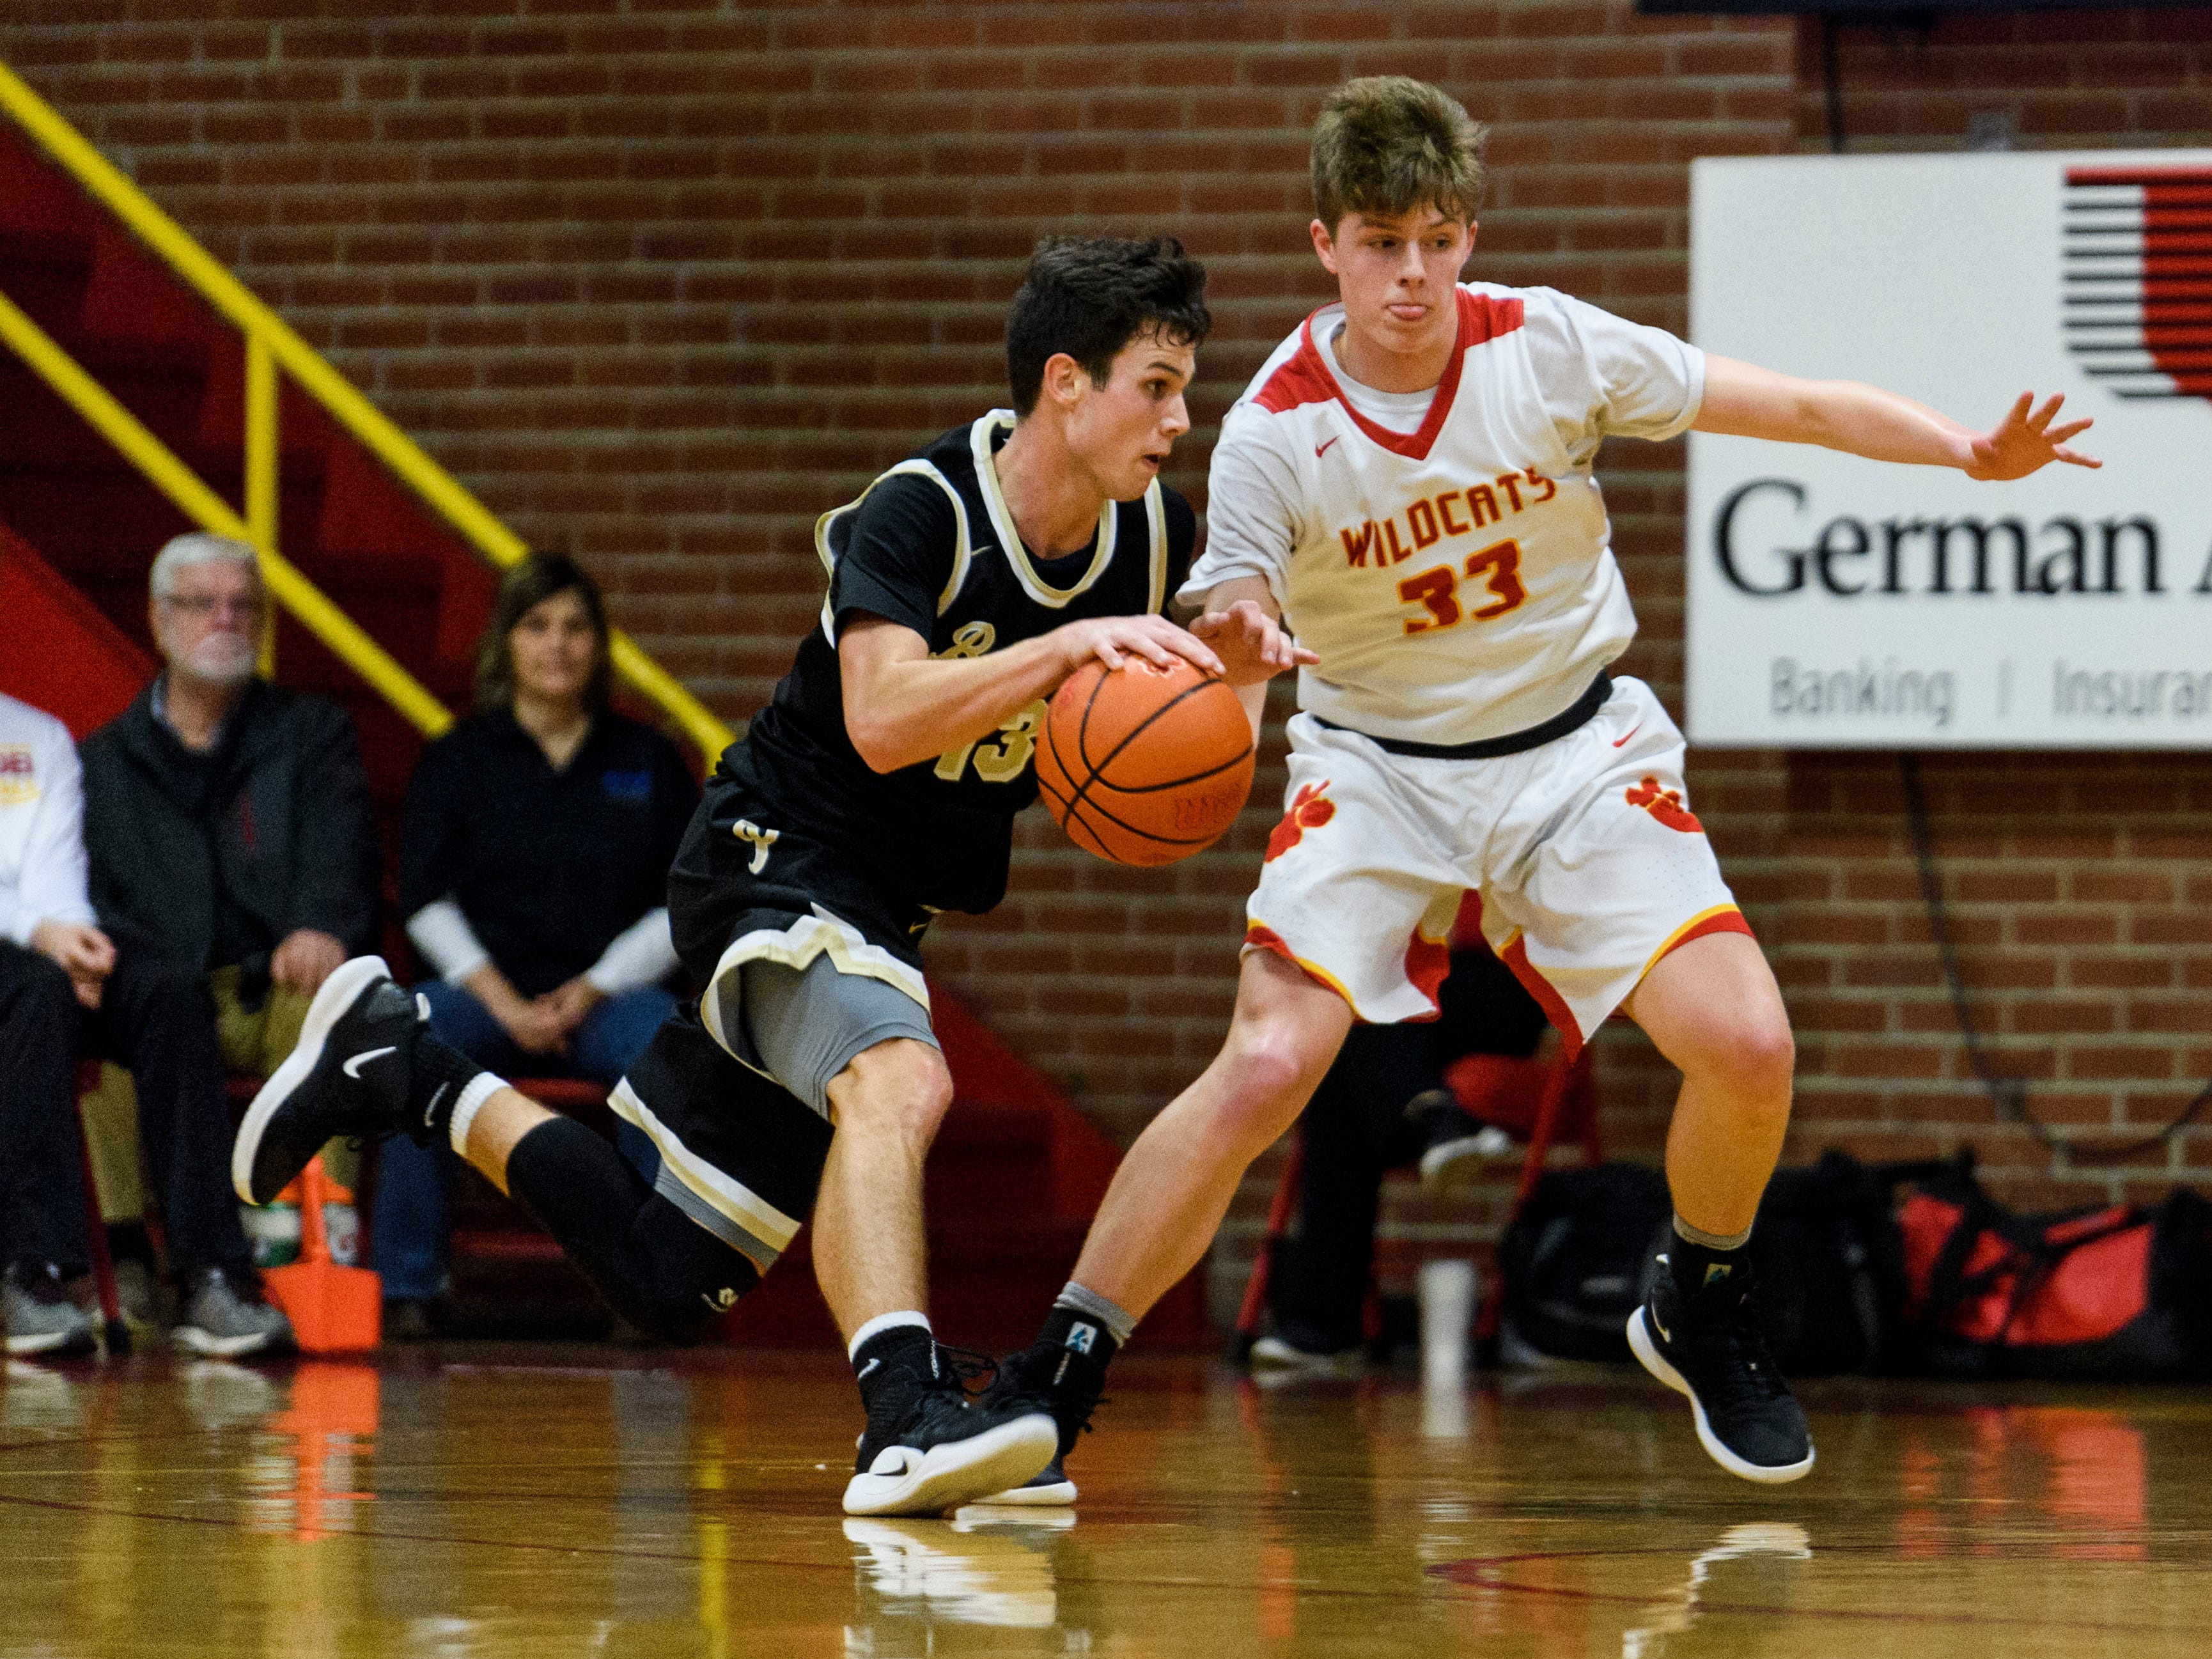 Mater Dei's Jackson Hiester (33) guards Boonville's Rylan Hicks (13) during the first quarter at Mater Dei High School in Evansville, Ind., Saturday, Jan. 5, 2019. The Wildcats defeated the Pioneers, 93-65.